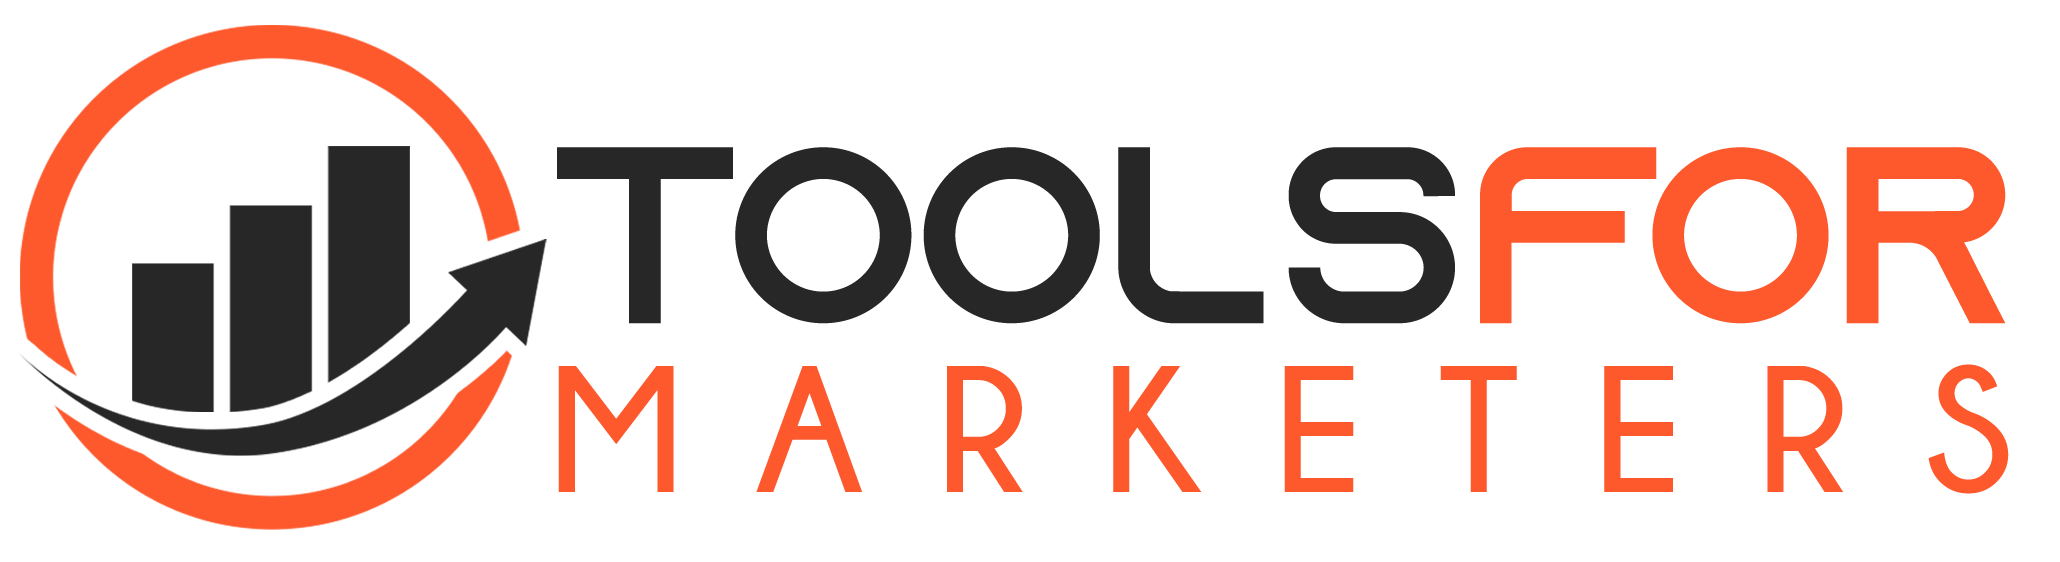 Recommended Tools For Marketers